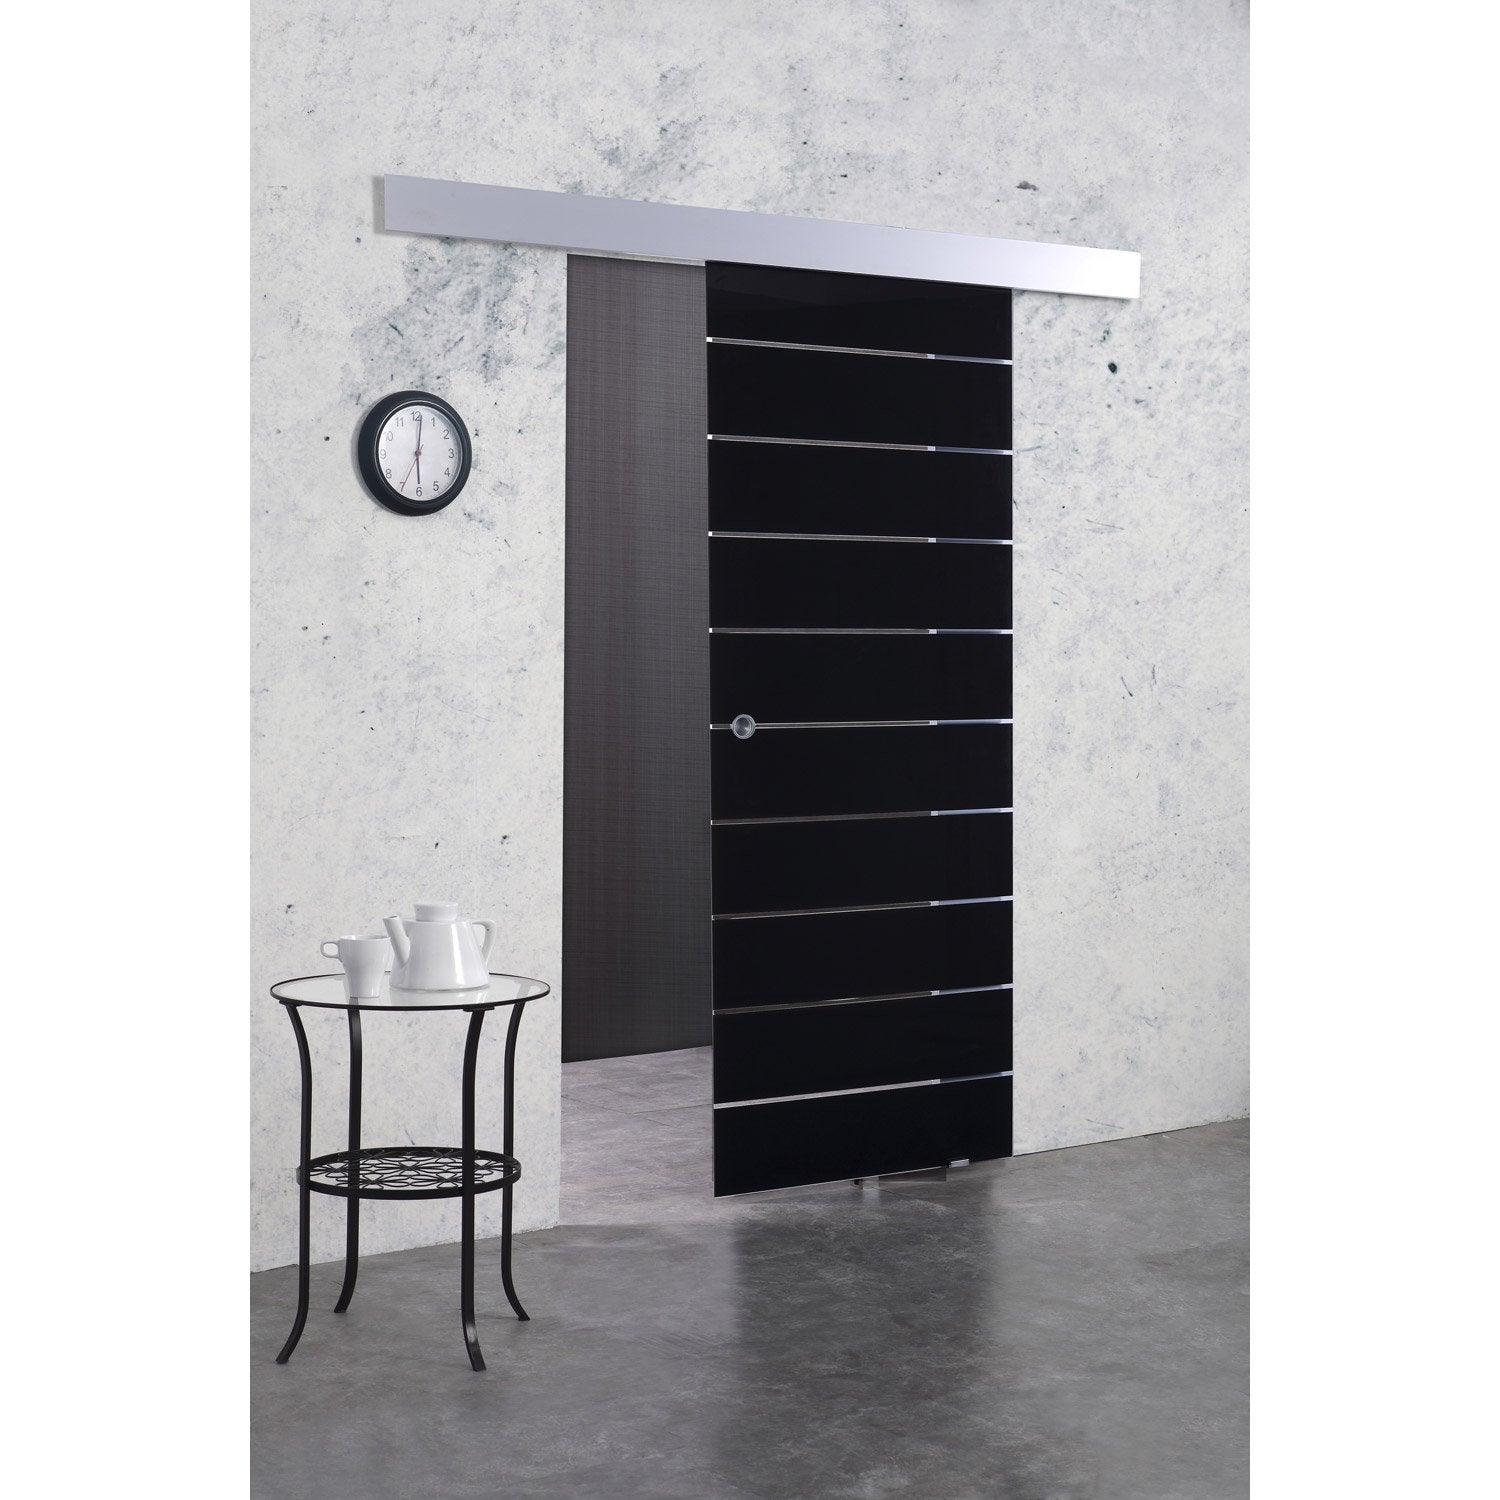 porte coulissante verre tremp floride artens 204 x 83 cm leroy merlin. Black Bedroom Furniture Sets. Home Design Ideas